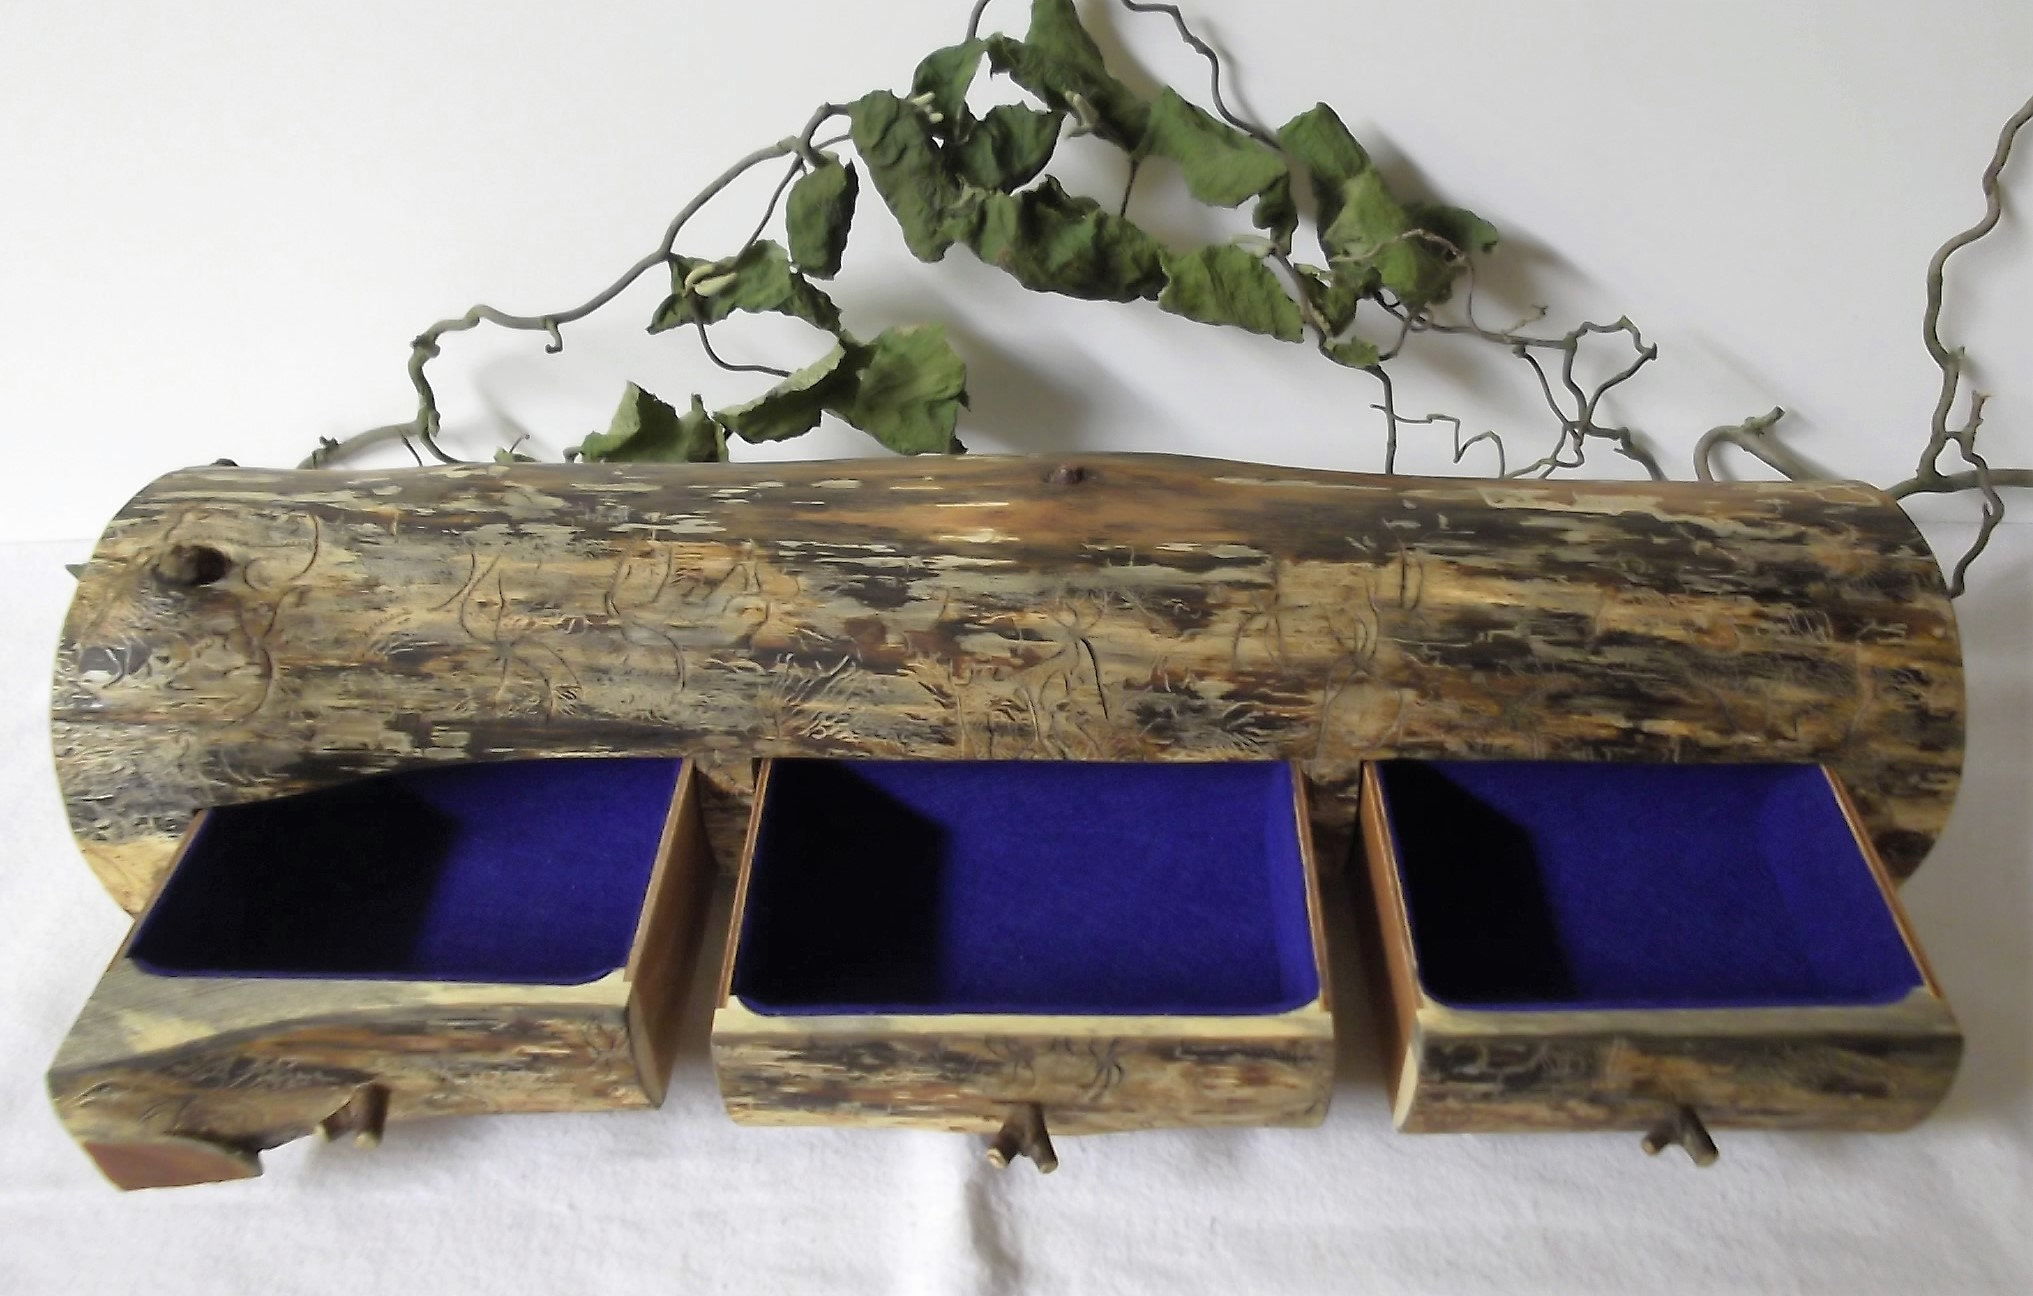 a jewelry box from a pine tree trunk.